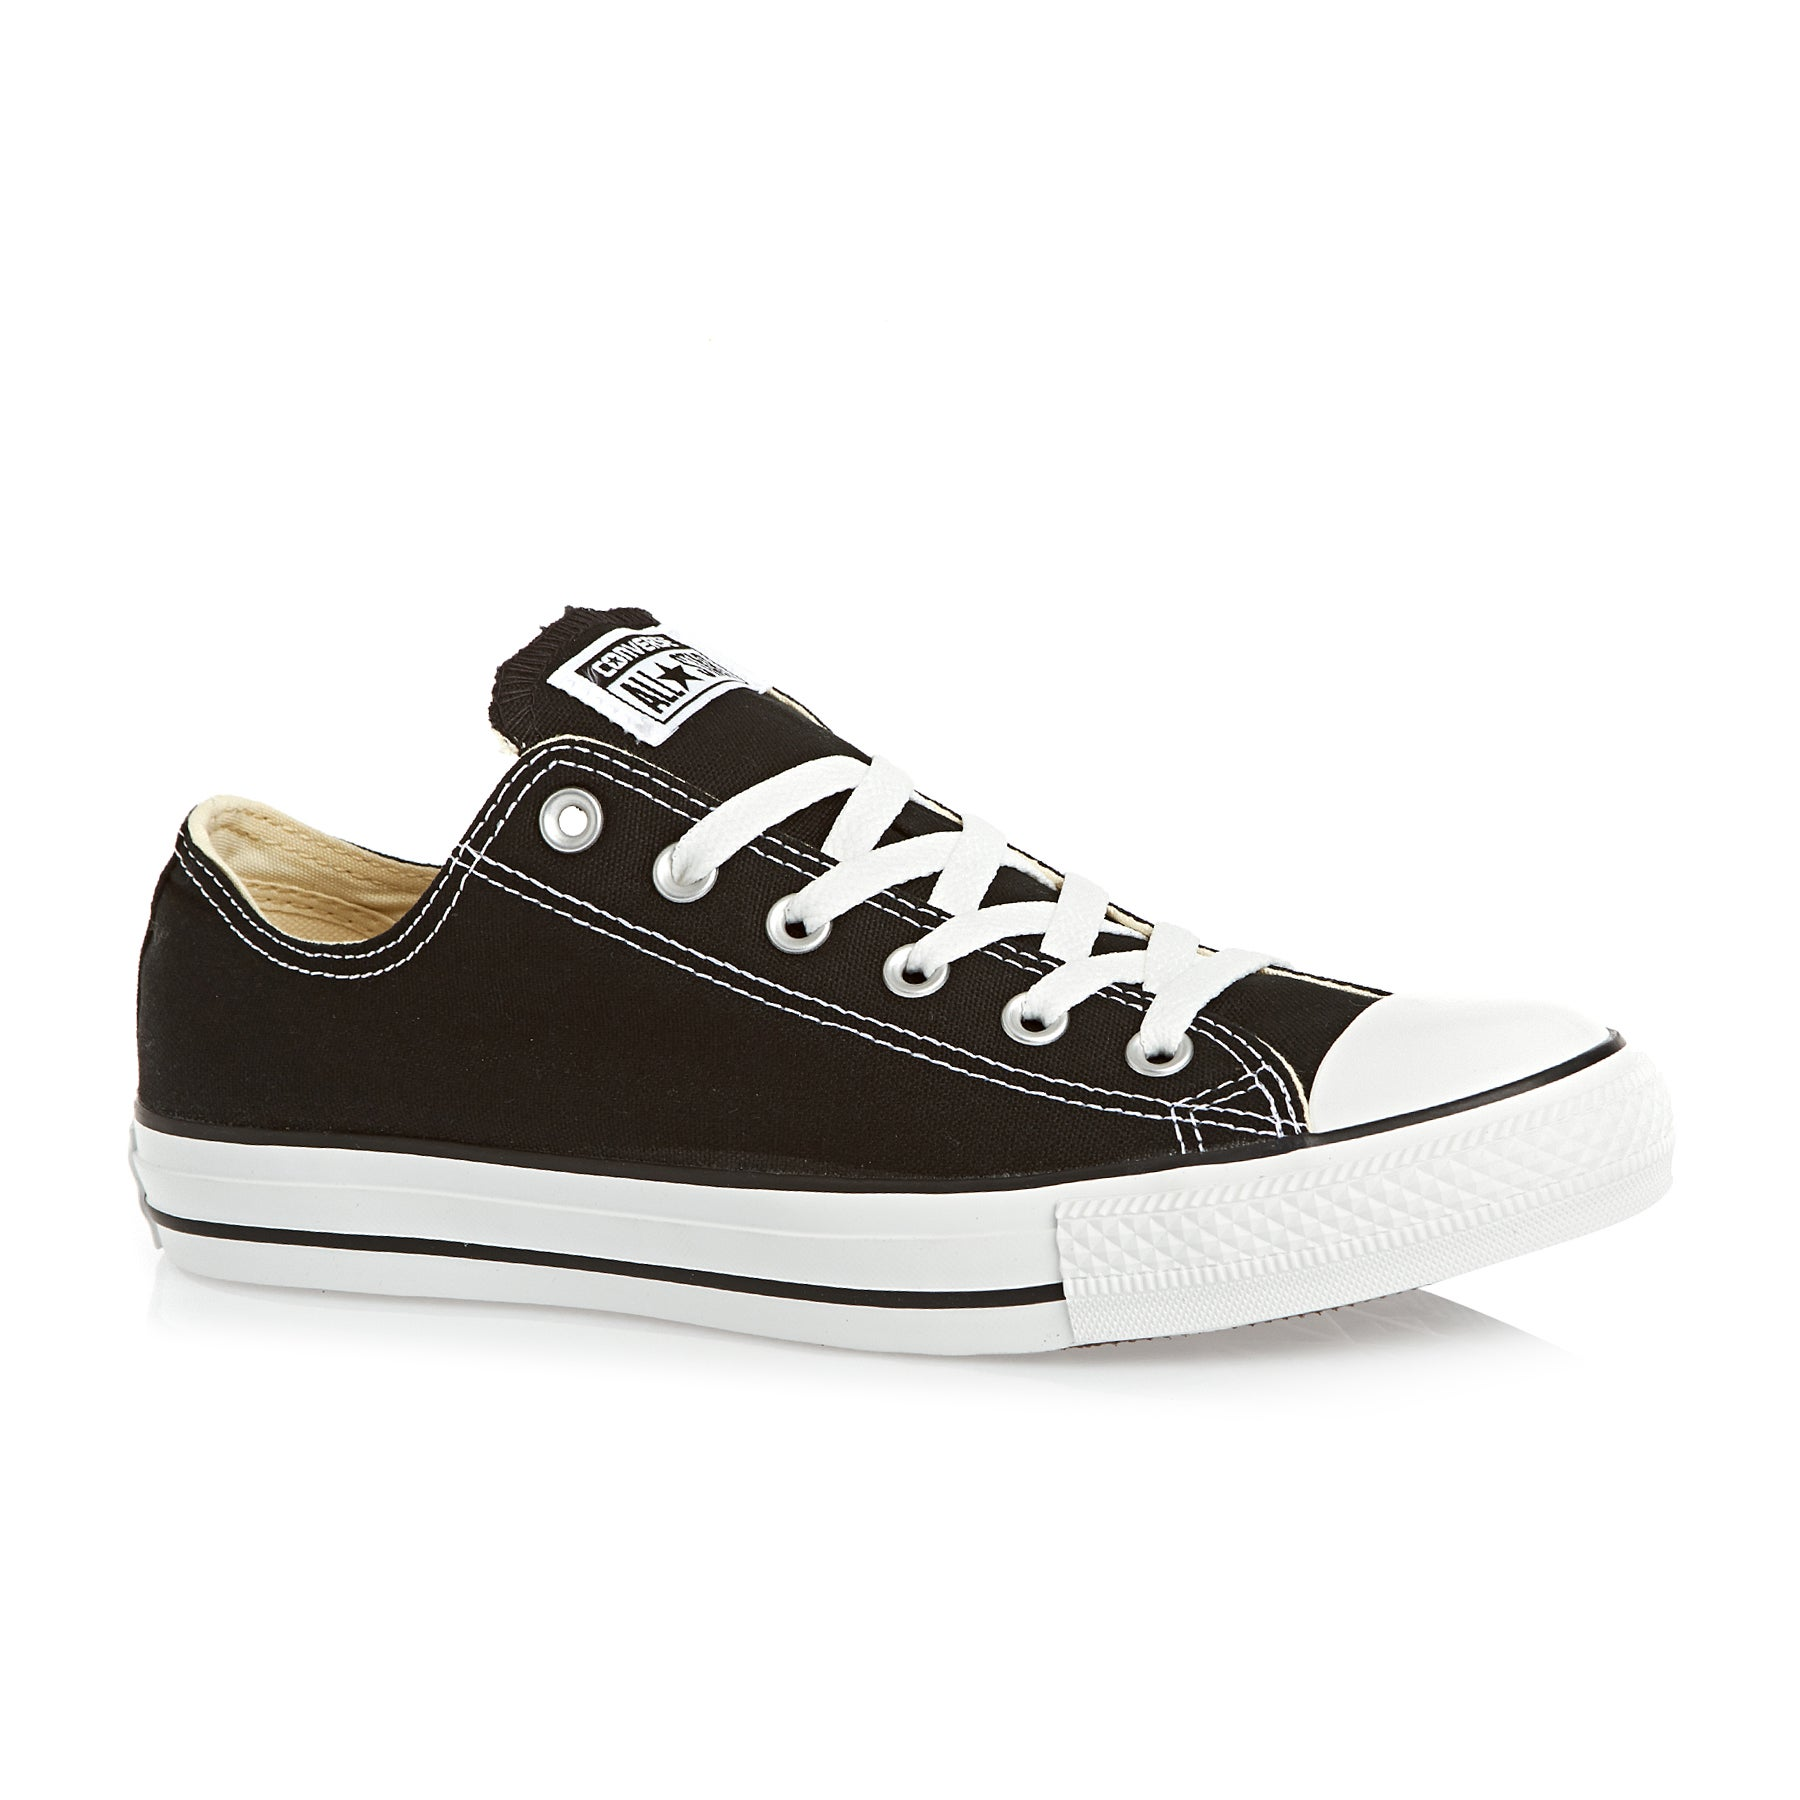 Converse Chuck Taylor All Stars OX Shoes - Black